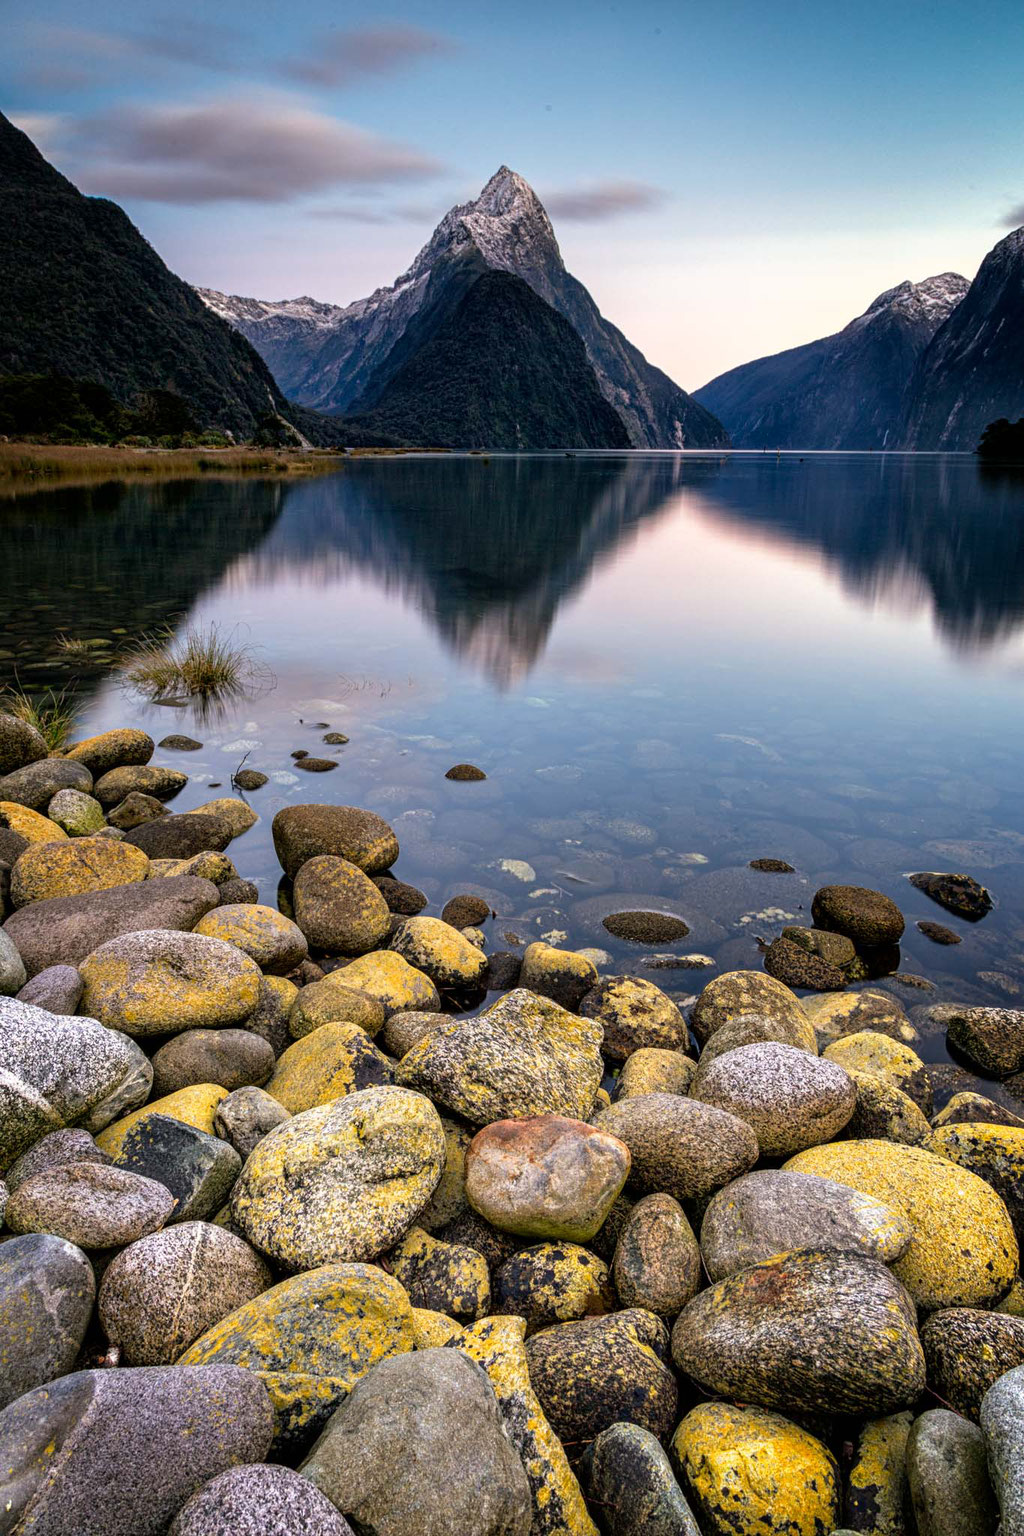 Early morning and calm waters in Milford Sound